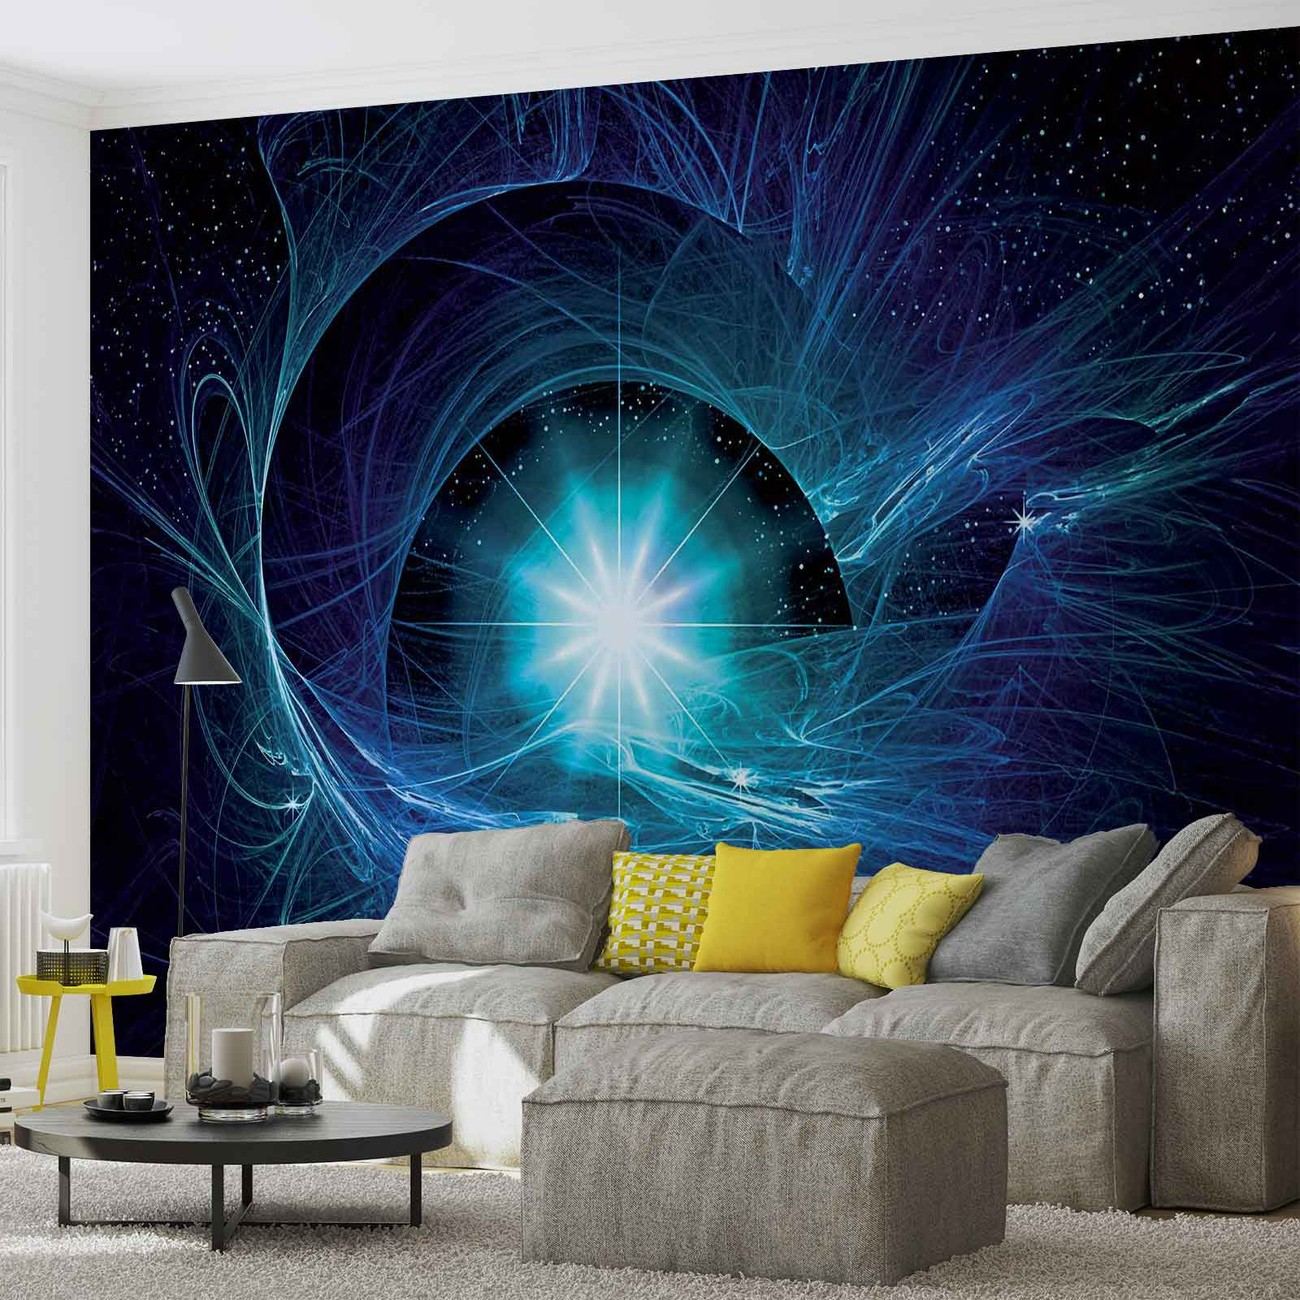 Cosmic Star Abstract Wall Paper Mural